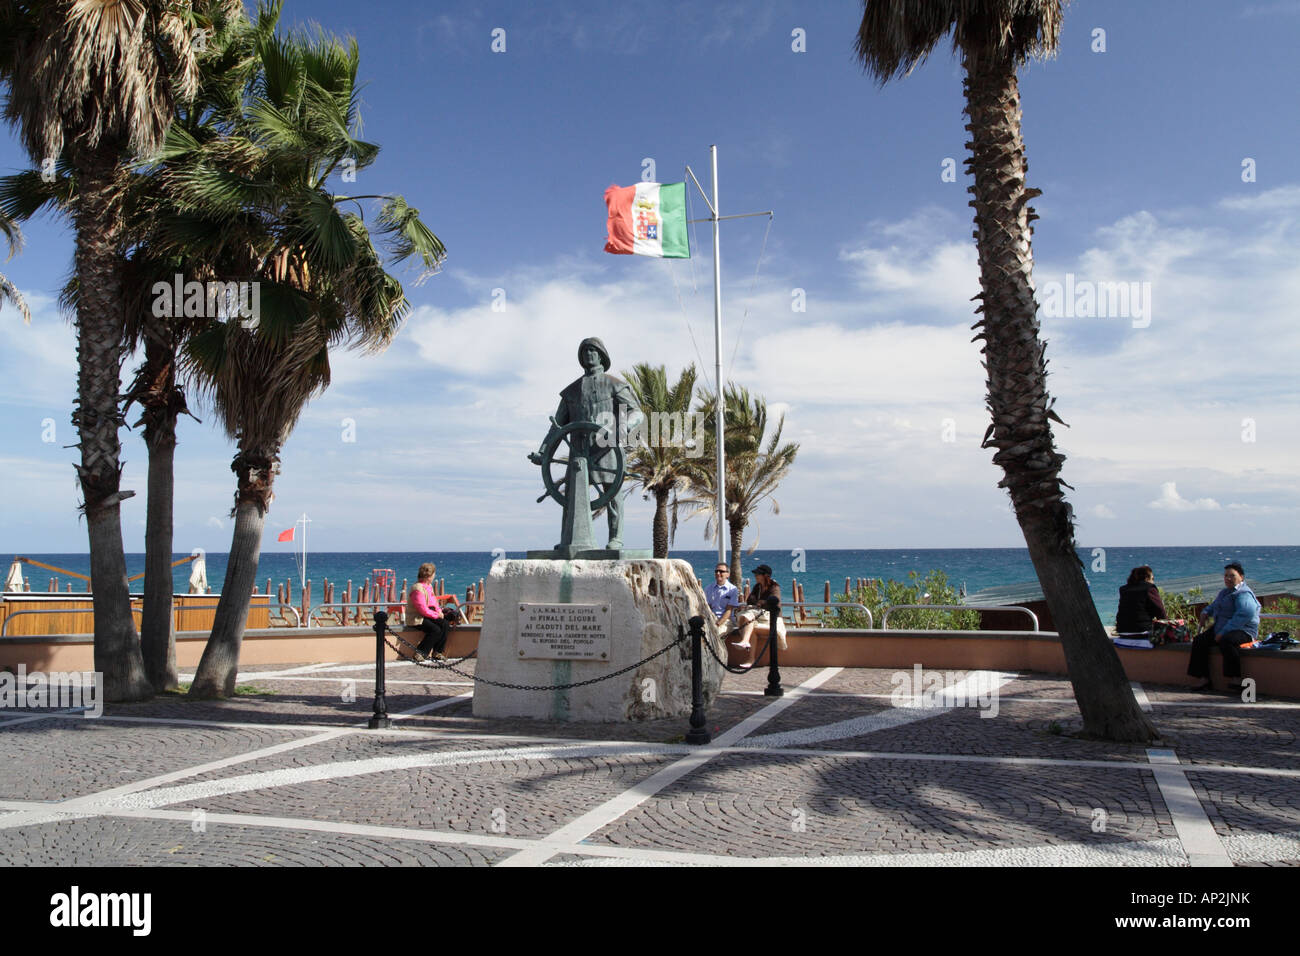 Finale Ligure monument, Italy. - Stock Image